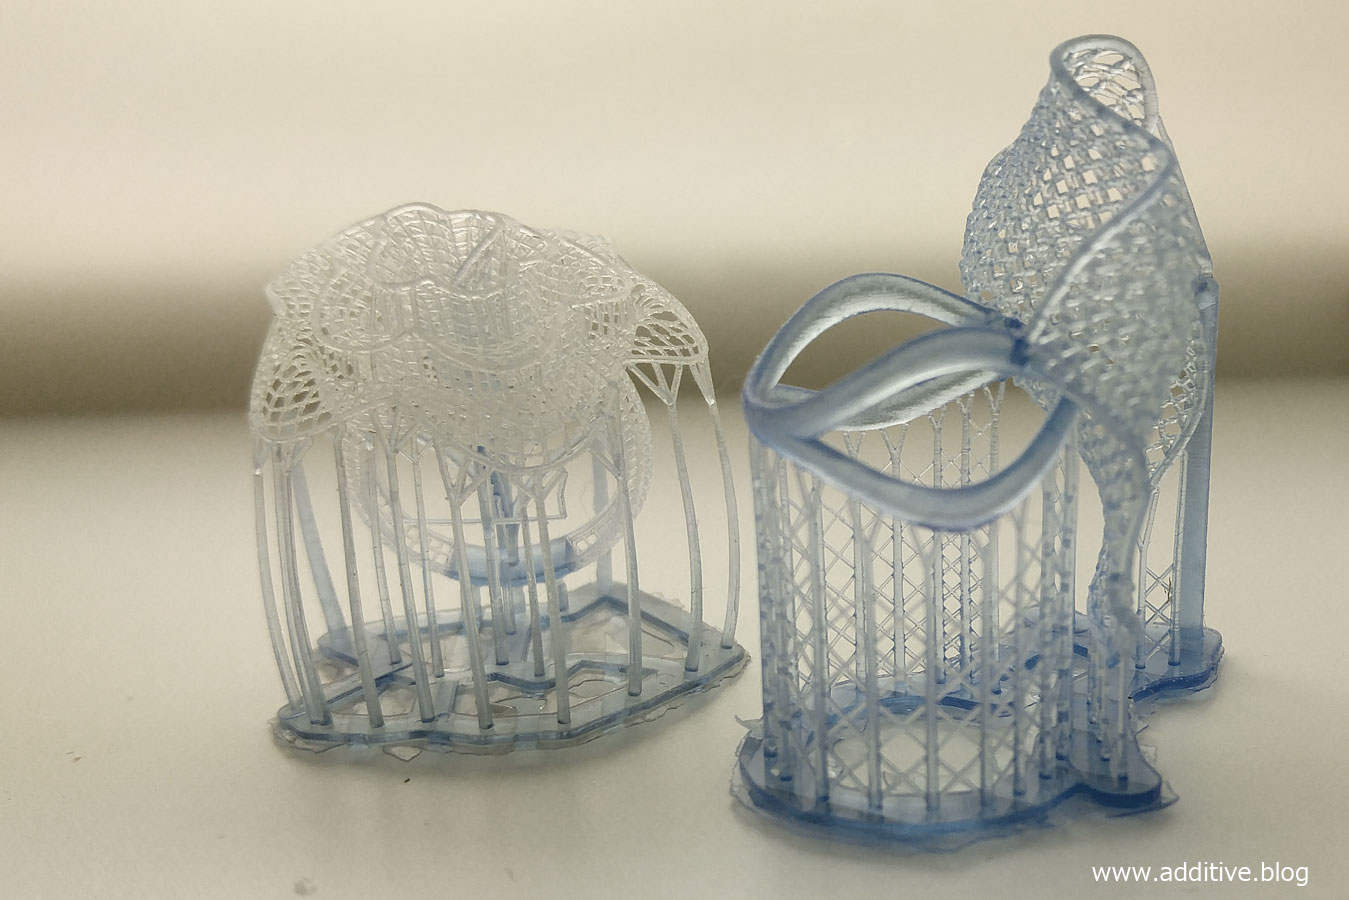 SLA - Stereolithography (and DLP, CDLP, CLIP)